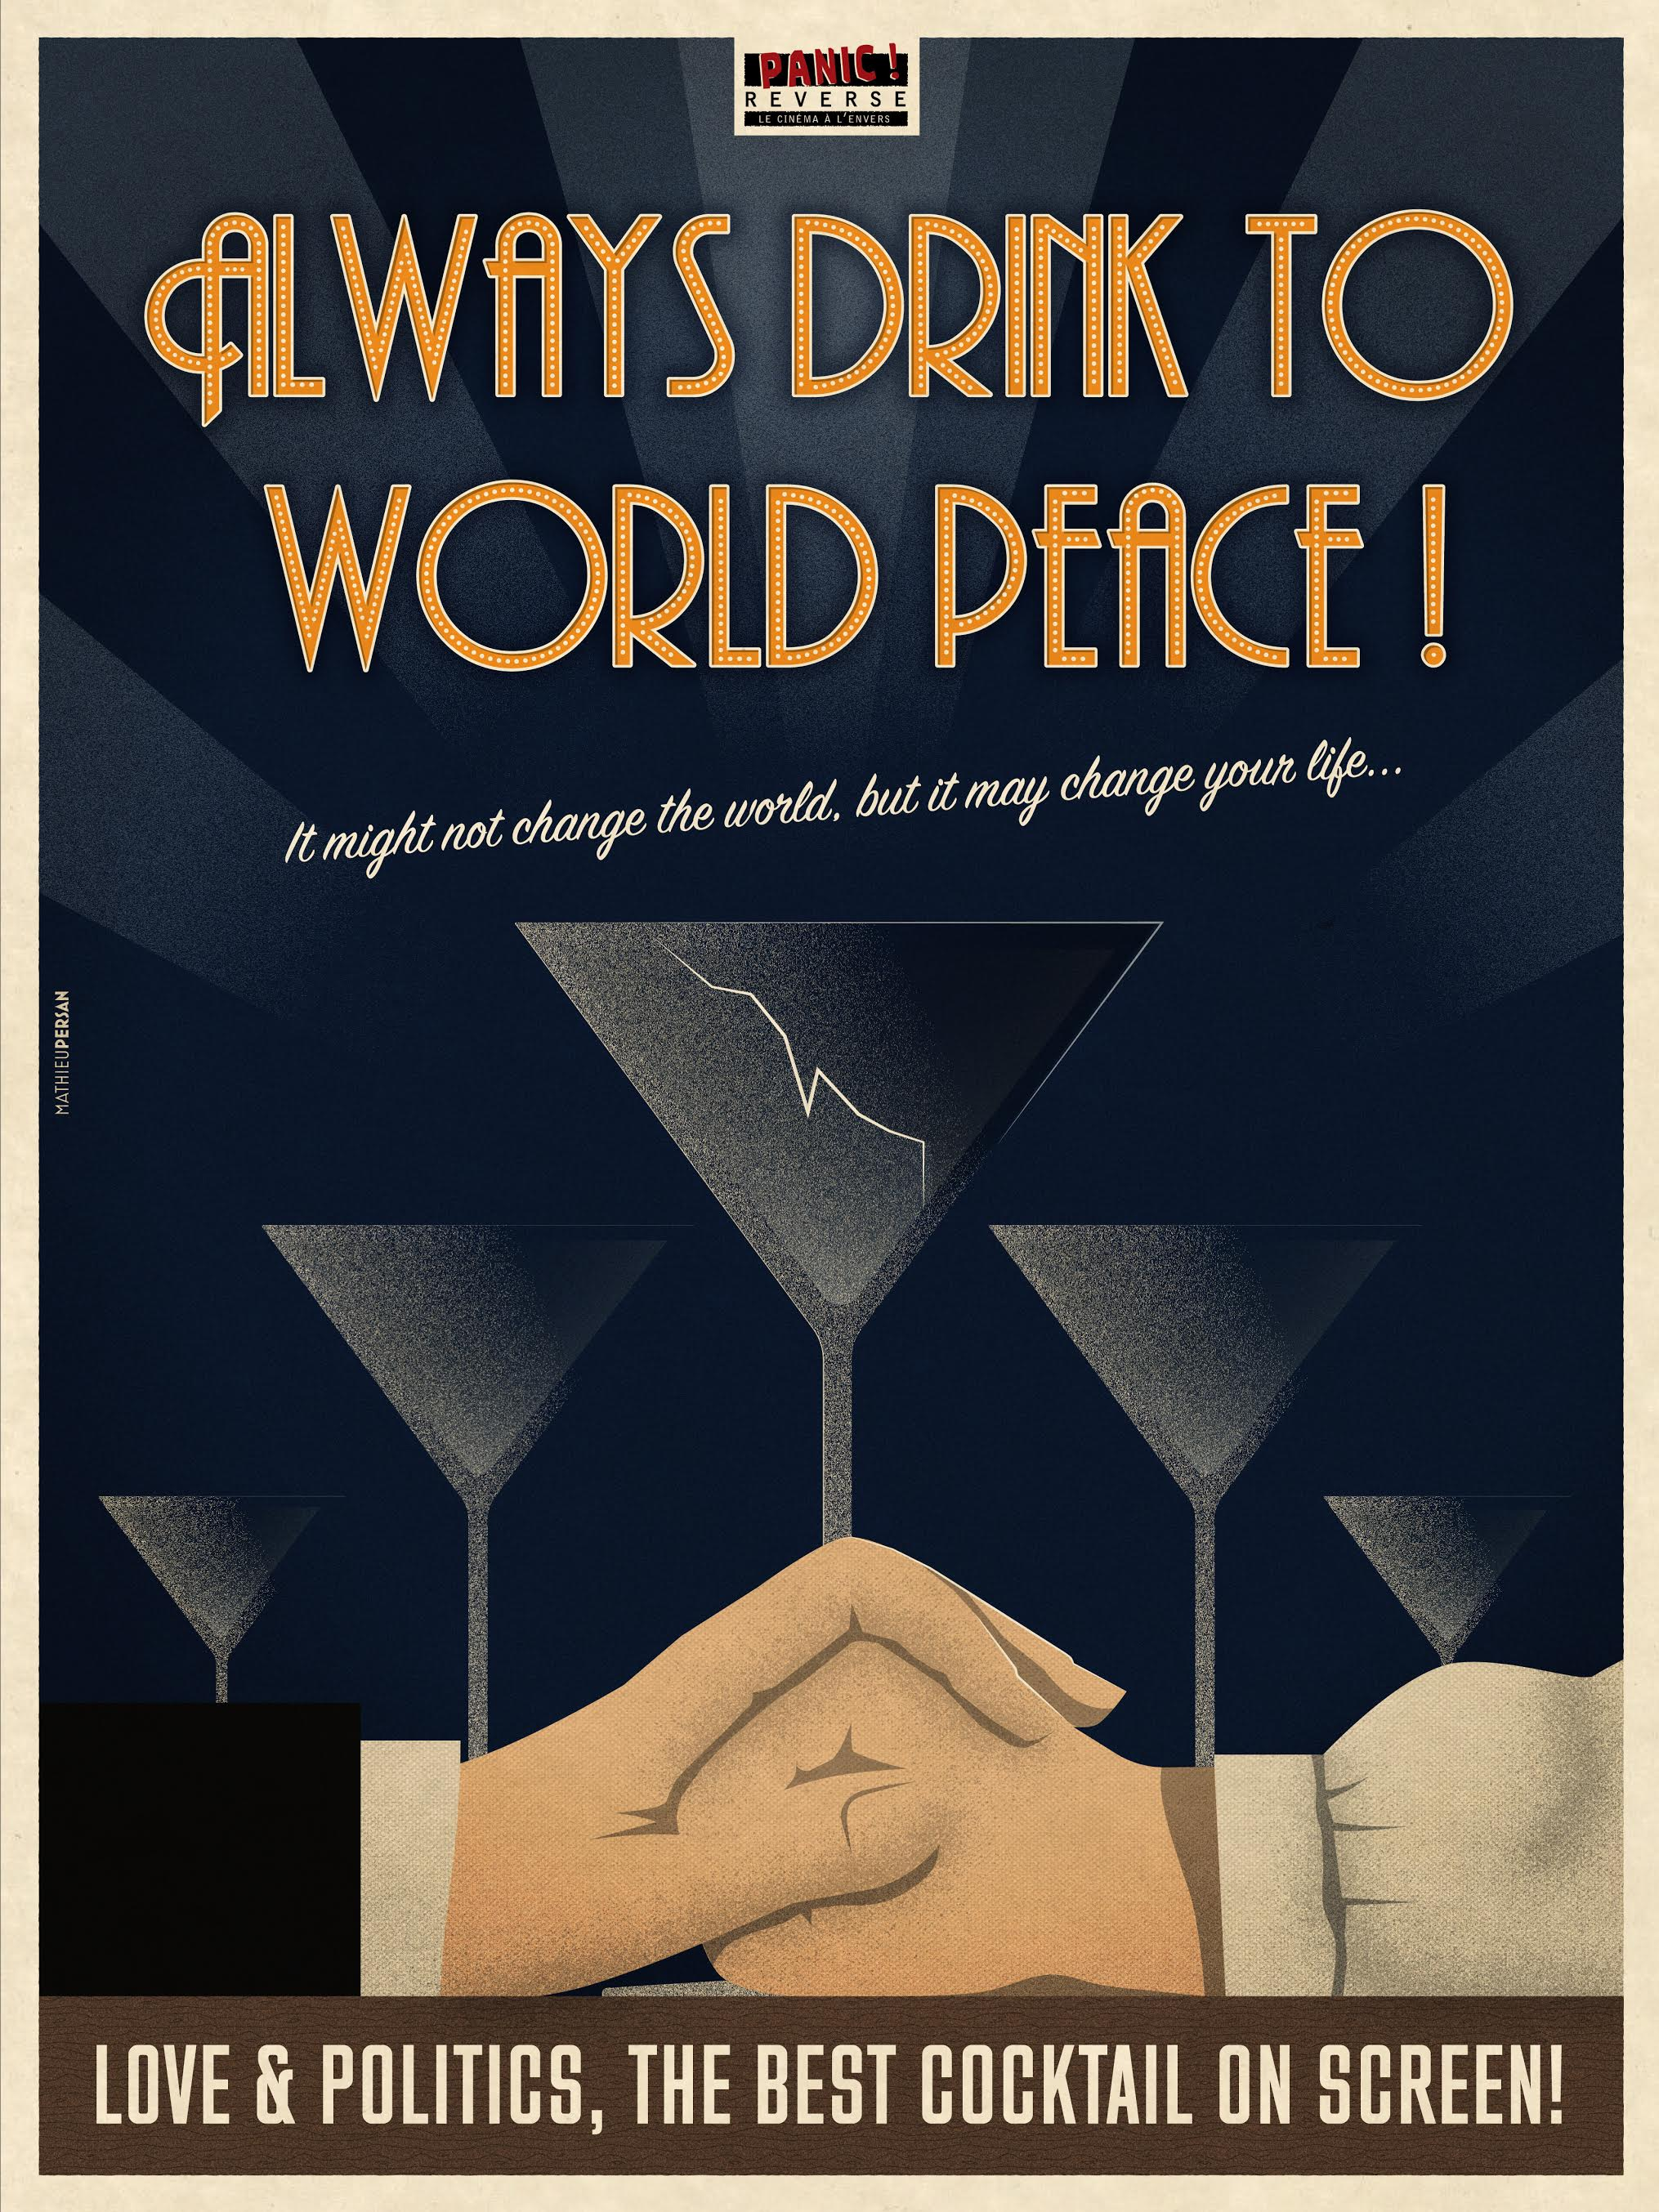 ALWAYS DRINK FORT WORLD PEACE - Mathieu Persan